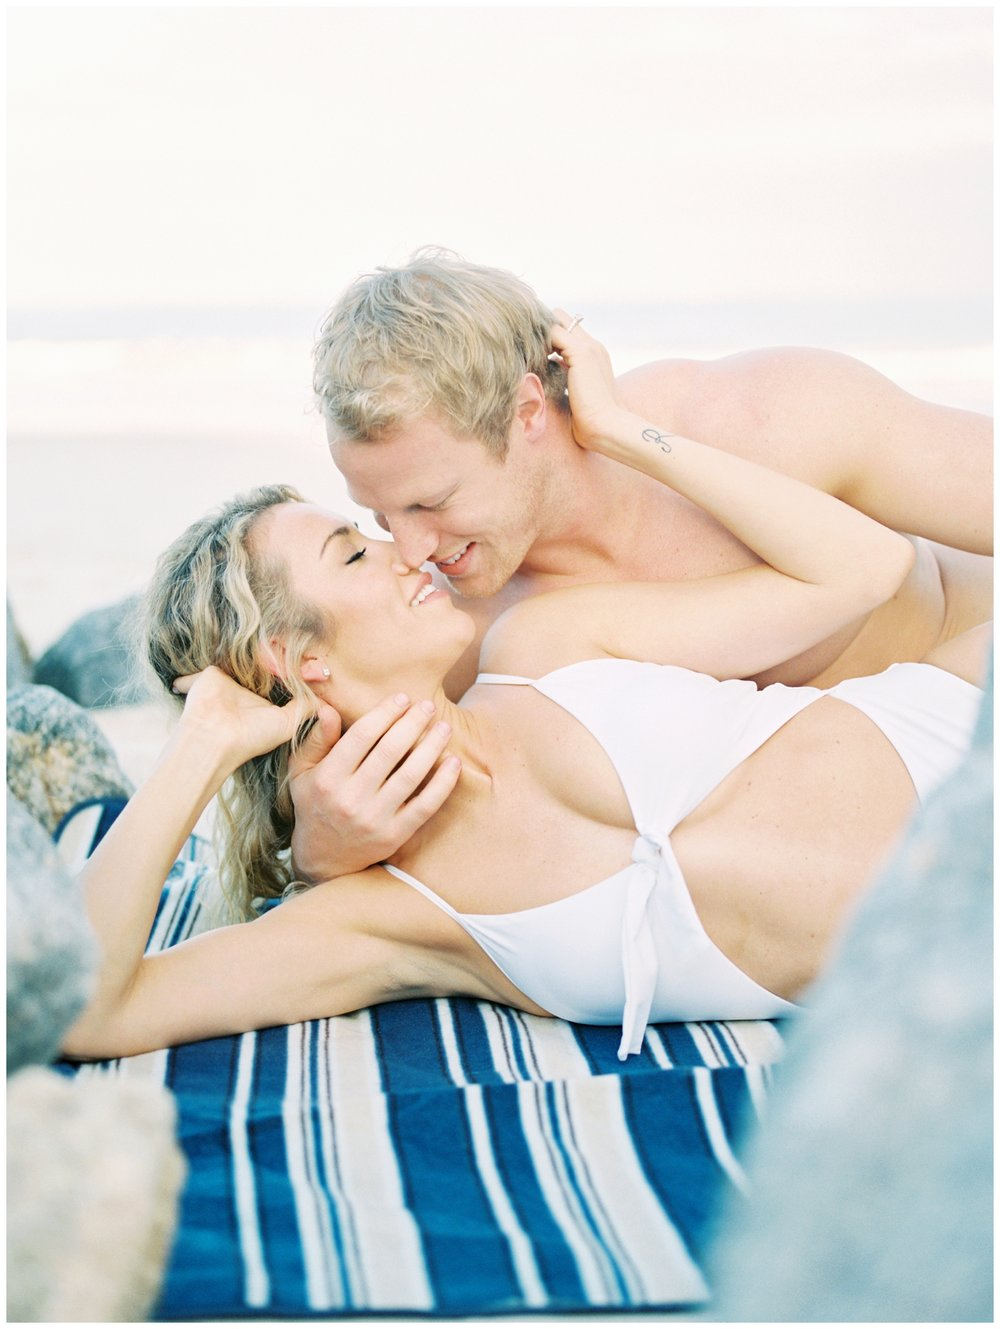 Lisa Silva Photography -Beachy Lifestyle Engagement Session in Palm Coast Florida - Jacksonville Film Photograpgers_0020.jpg